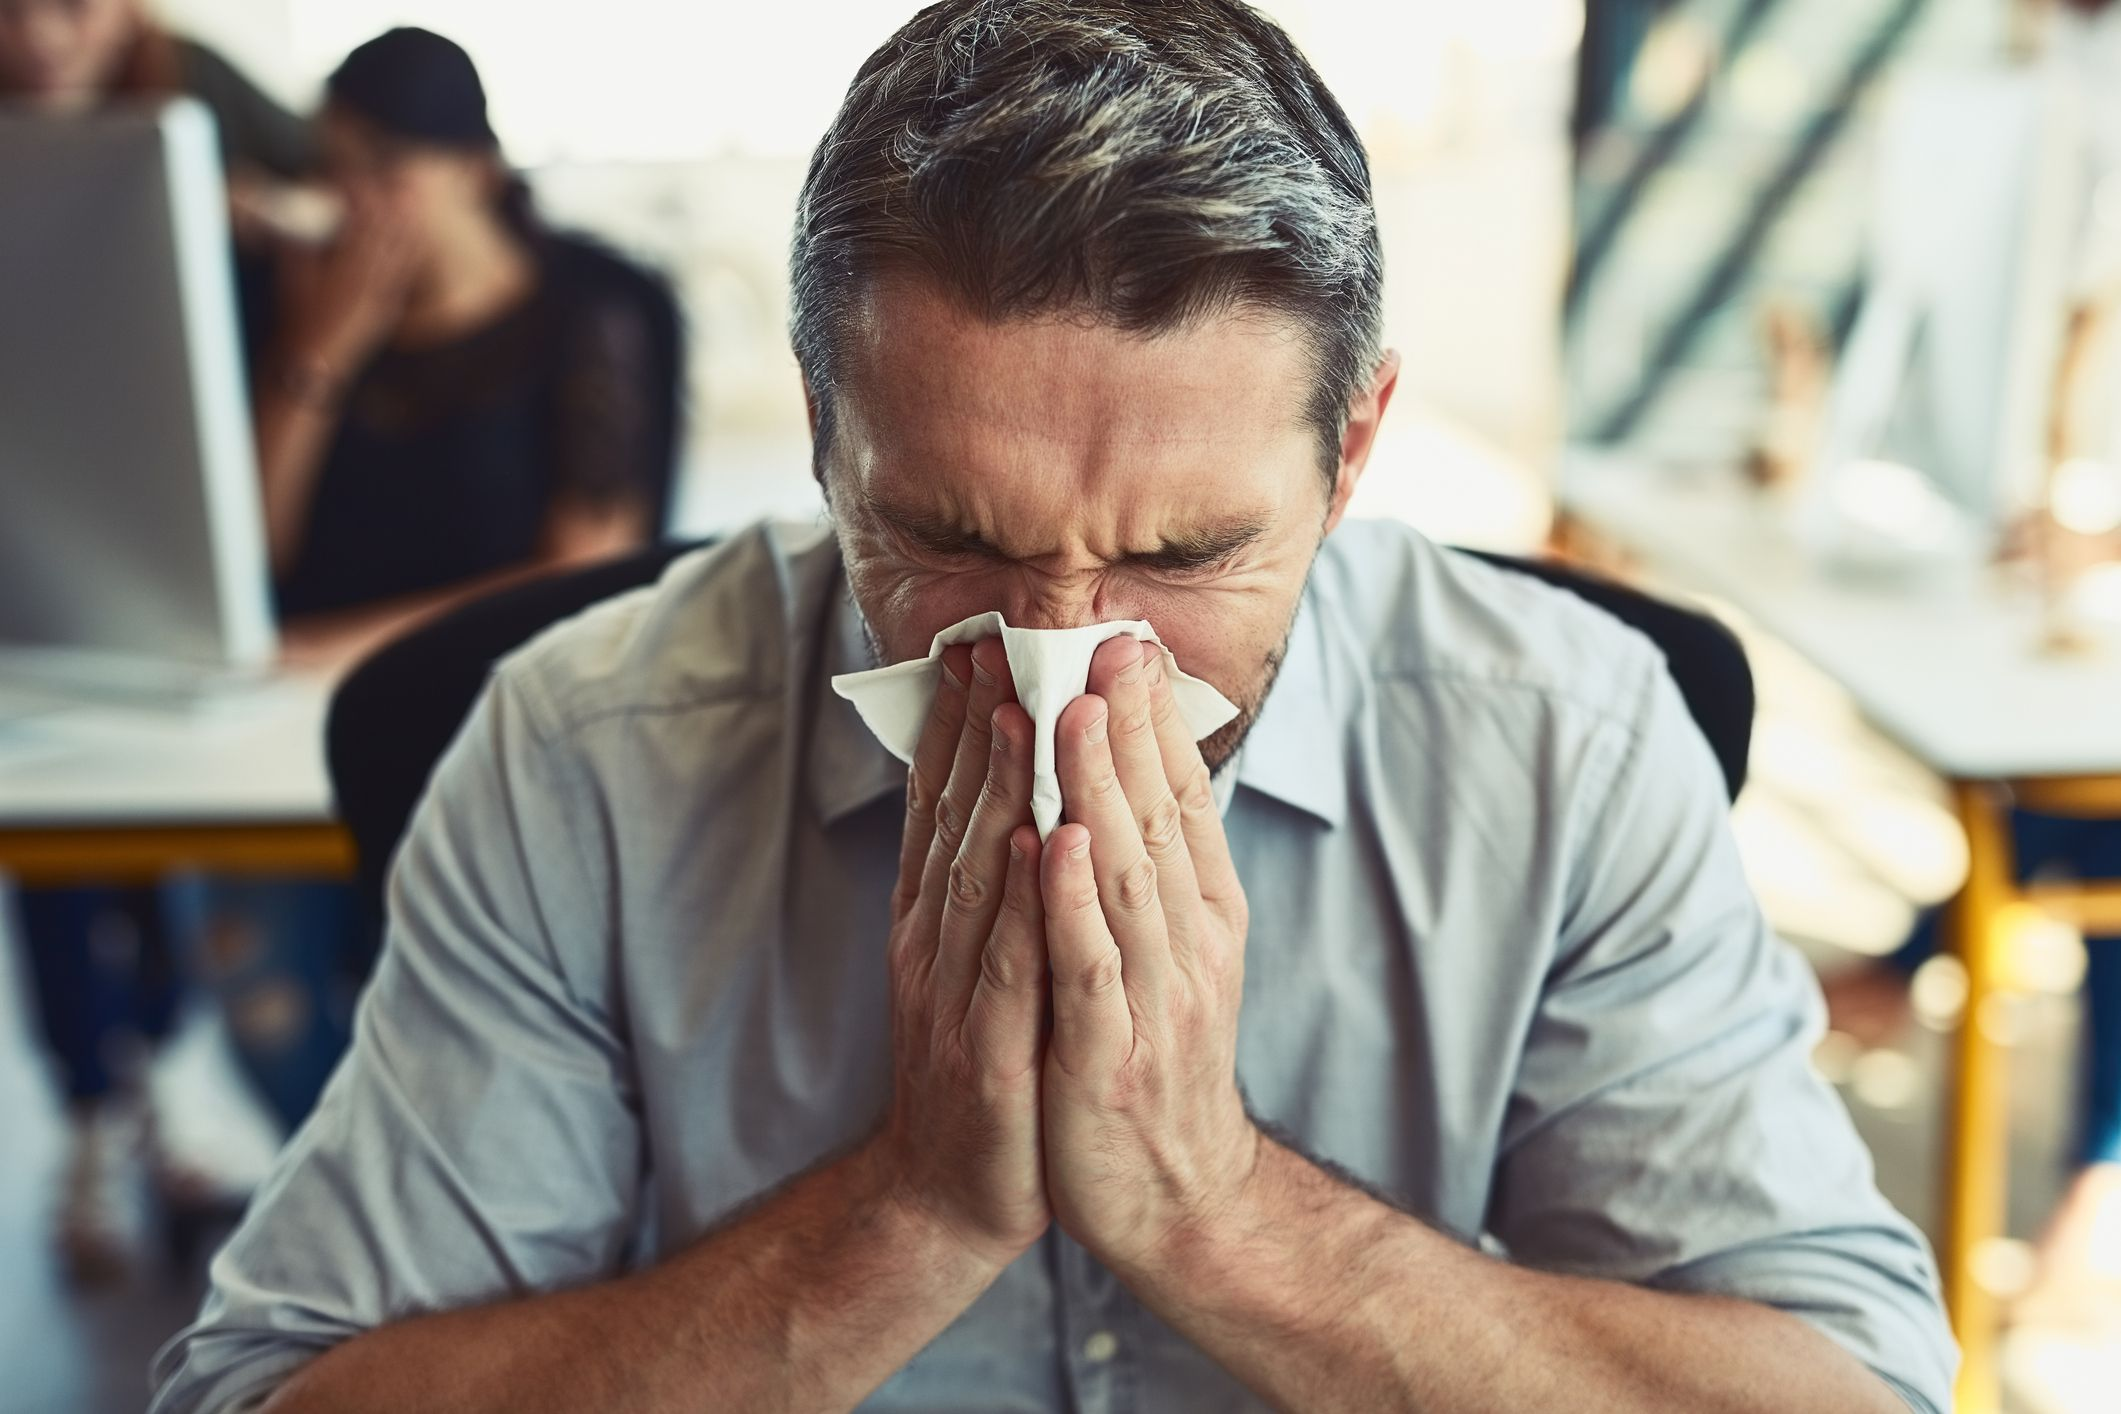 10 tips to side step cold and flu season